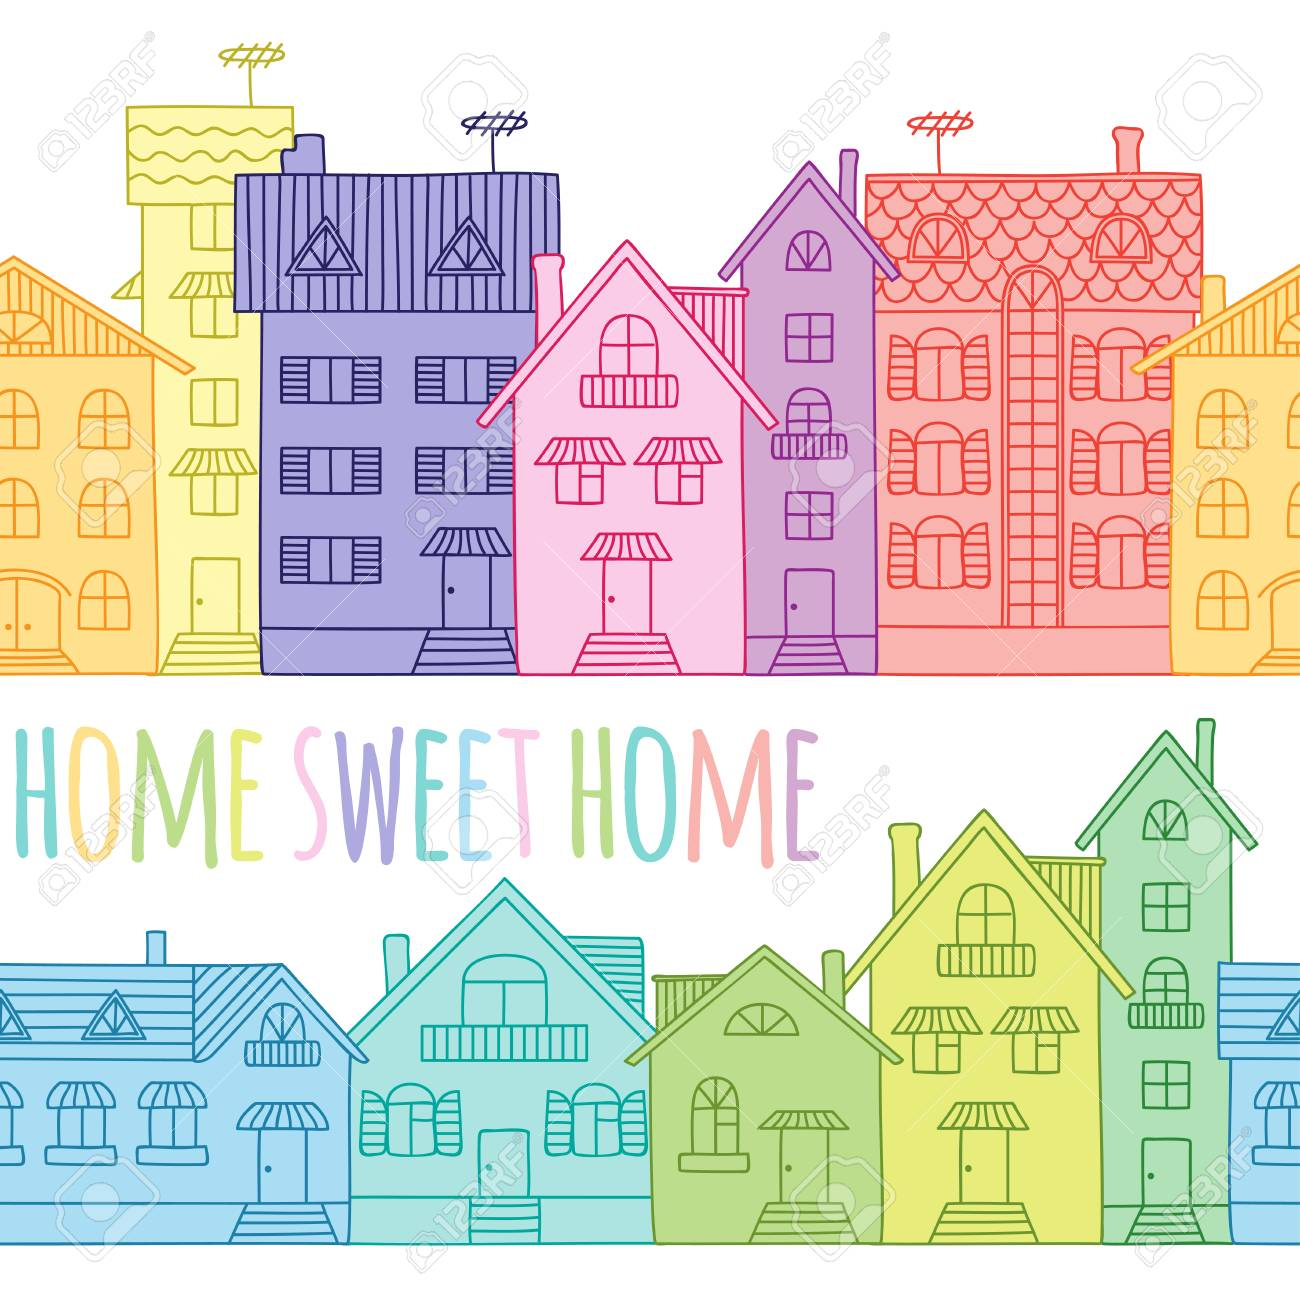 Tremendous Colorful Houses Are Situated In A Line And Form A Seamless Pattern Download Free Architecture Designs Scobabritishbridgeorg